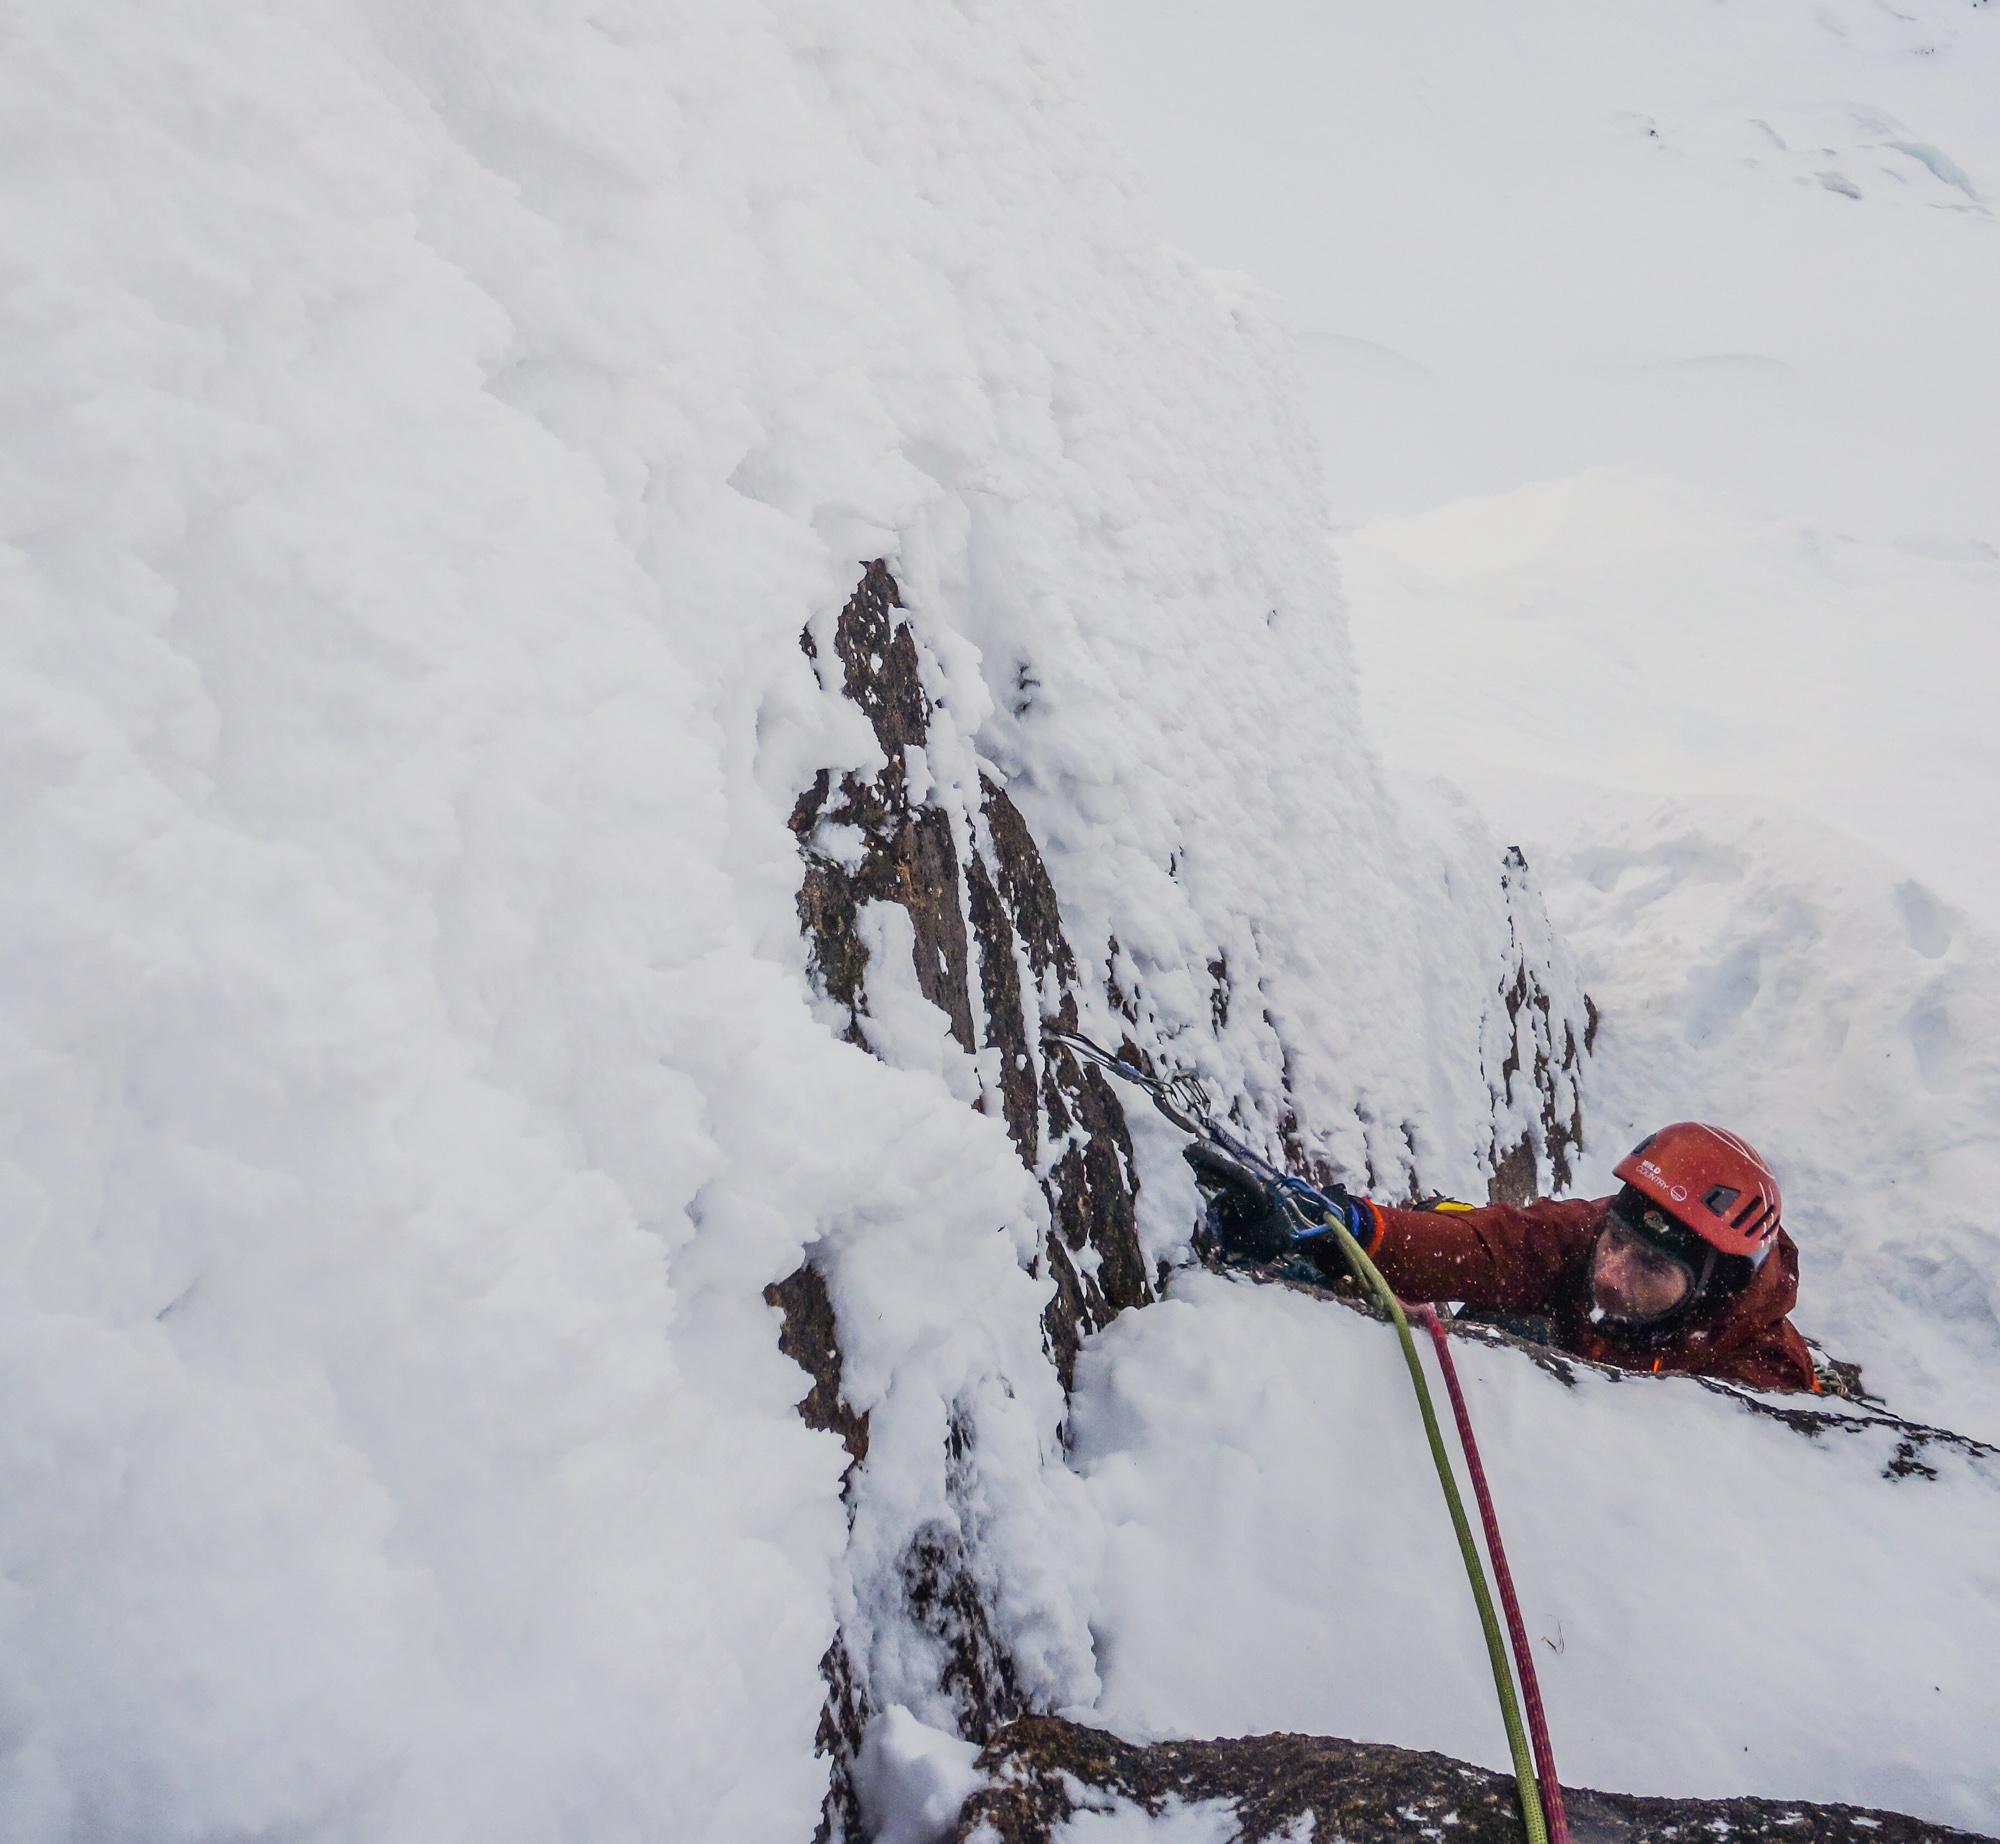 Trying hard on the crux corner and nearing the desperate mantle on to the powder covered slab above. Photo credit: Andy Inglis.